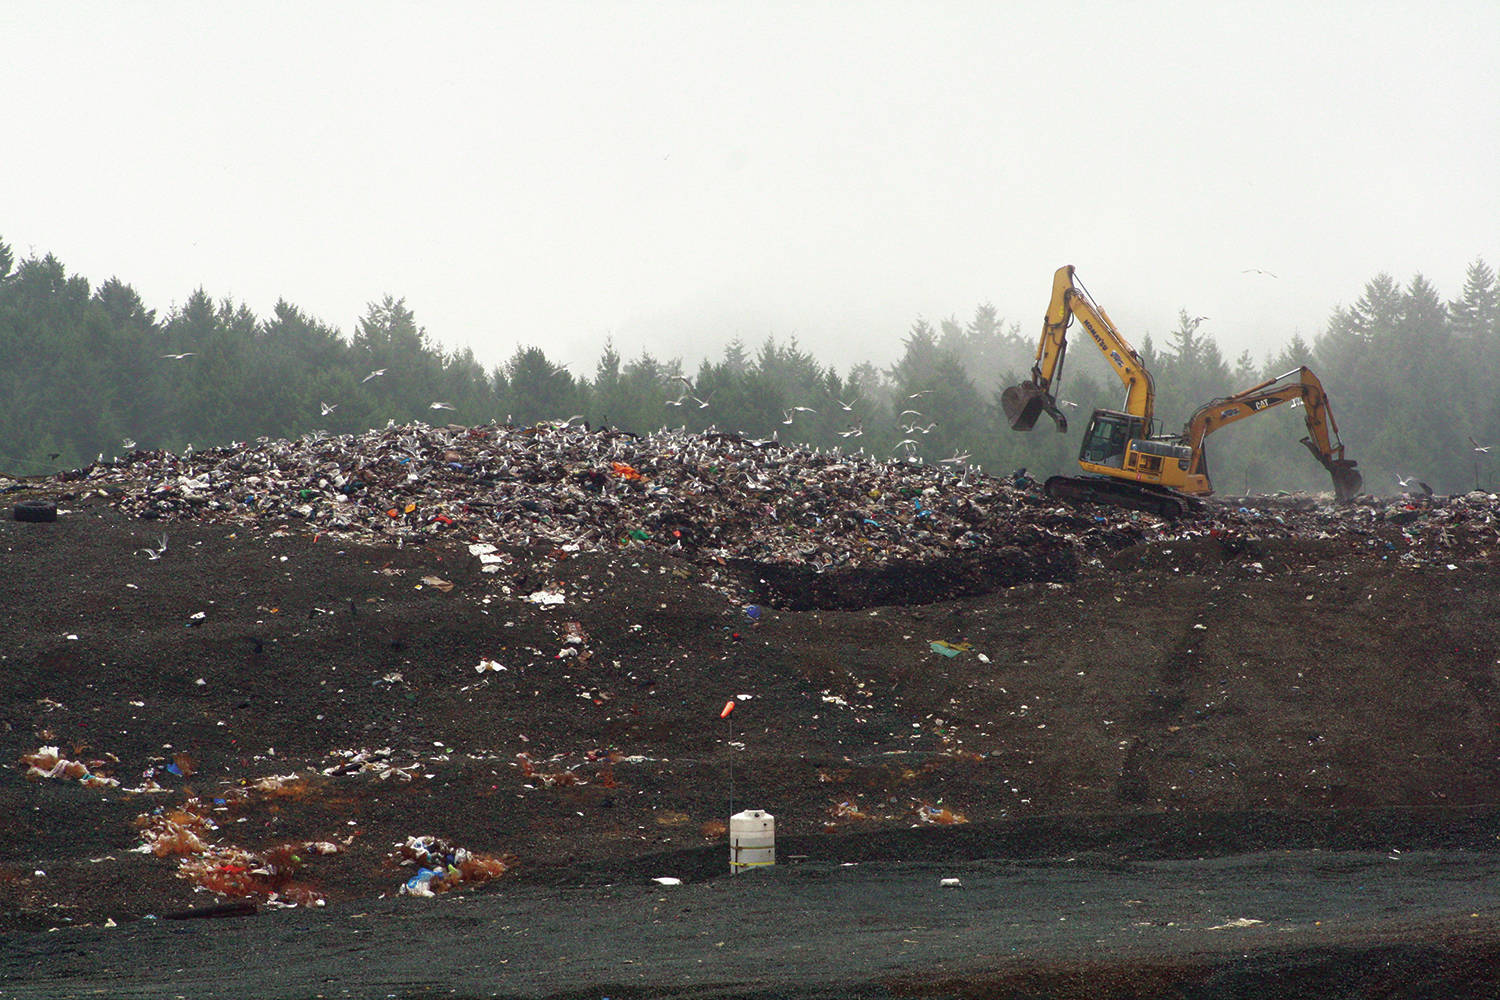 The Capital Regional District is expected to resume sending dried Class A biosolids, a byproduct of treated wastewater, to the mainland by the end of summer. (Black Press Media file photo)